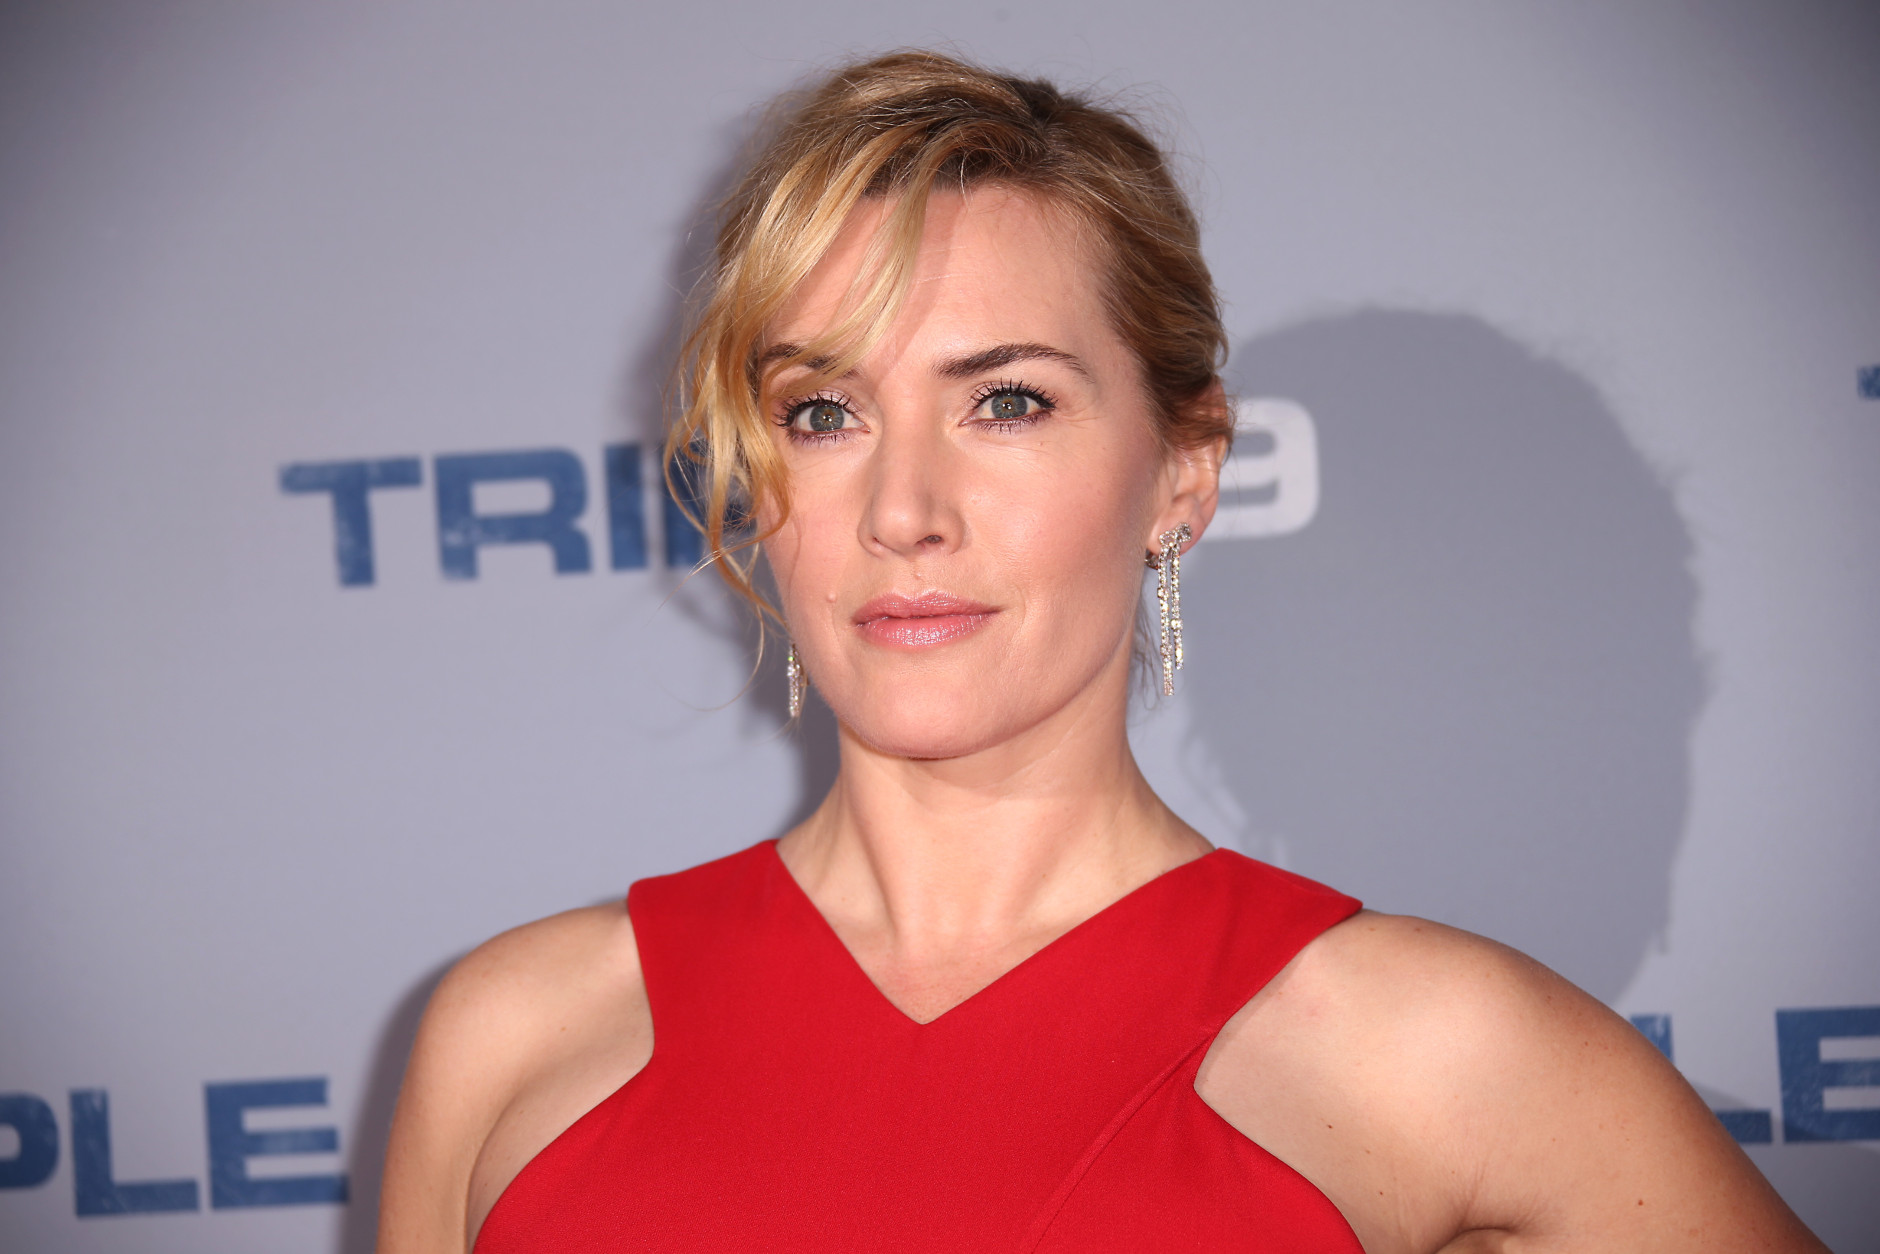 Actress Kate Winslet poses for photographers upon arrival at the premiere of the film 'Triple 9' in London, Tuesday, Feb. 9, 2016. (Photo by Joel Ryan/Invision/AP)